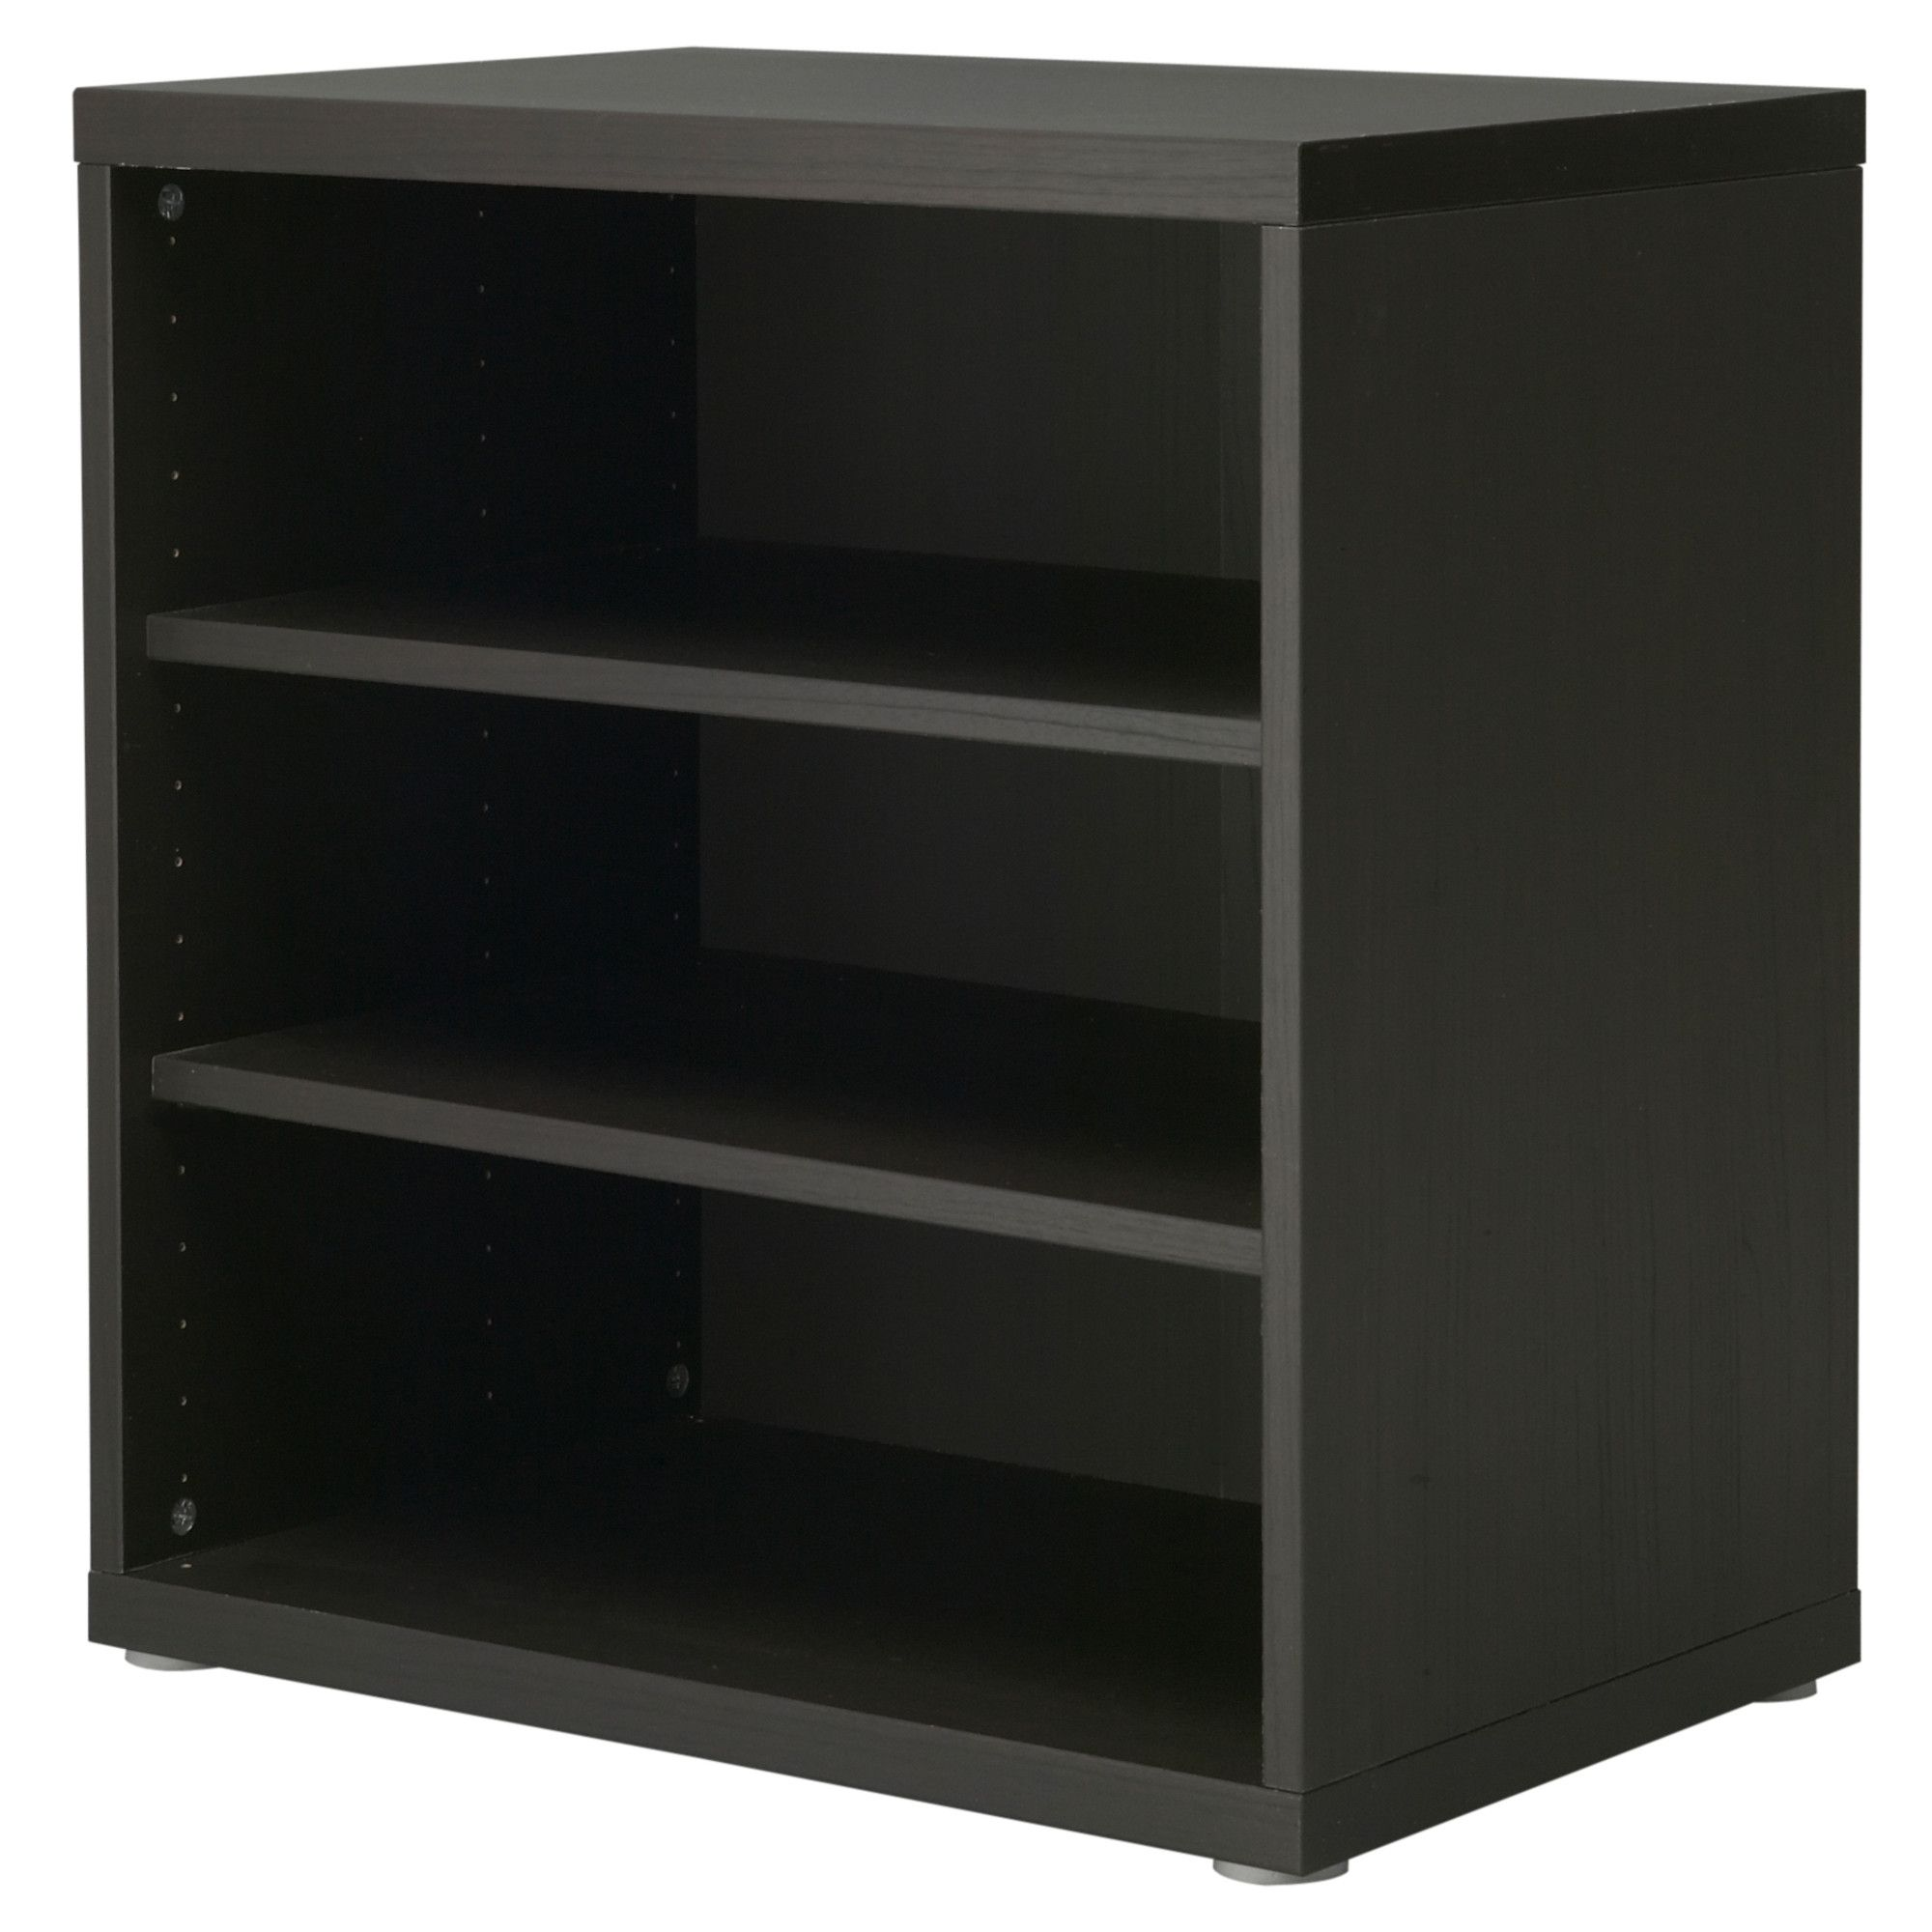 Bestå shelf unit height extension unit black brown ikea could be added on top of unit with door